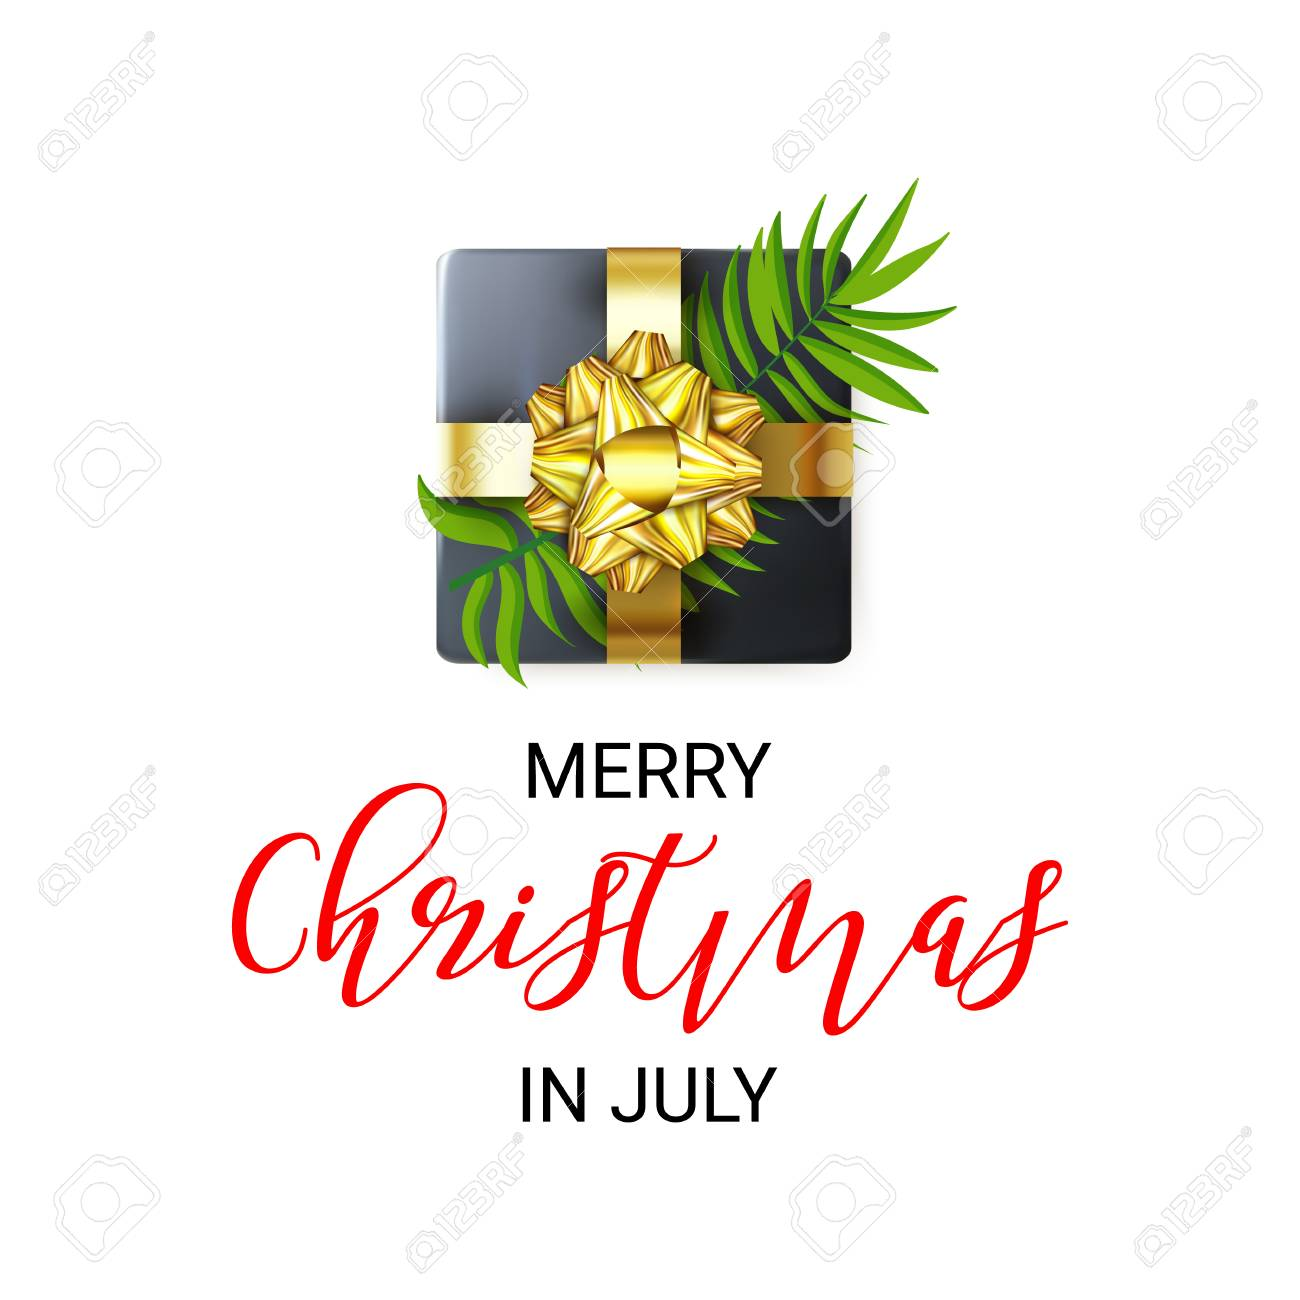 Christmas In July Royalty Free Images.Merry Christmas In July Greeting Banner Decorated With Realistic